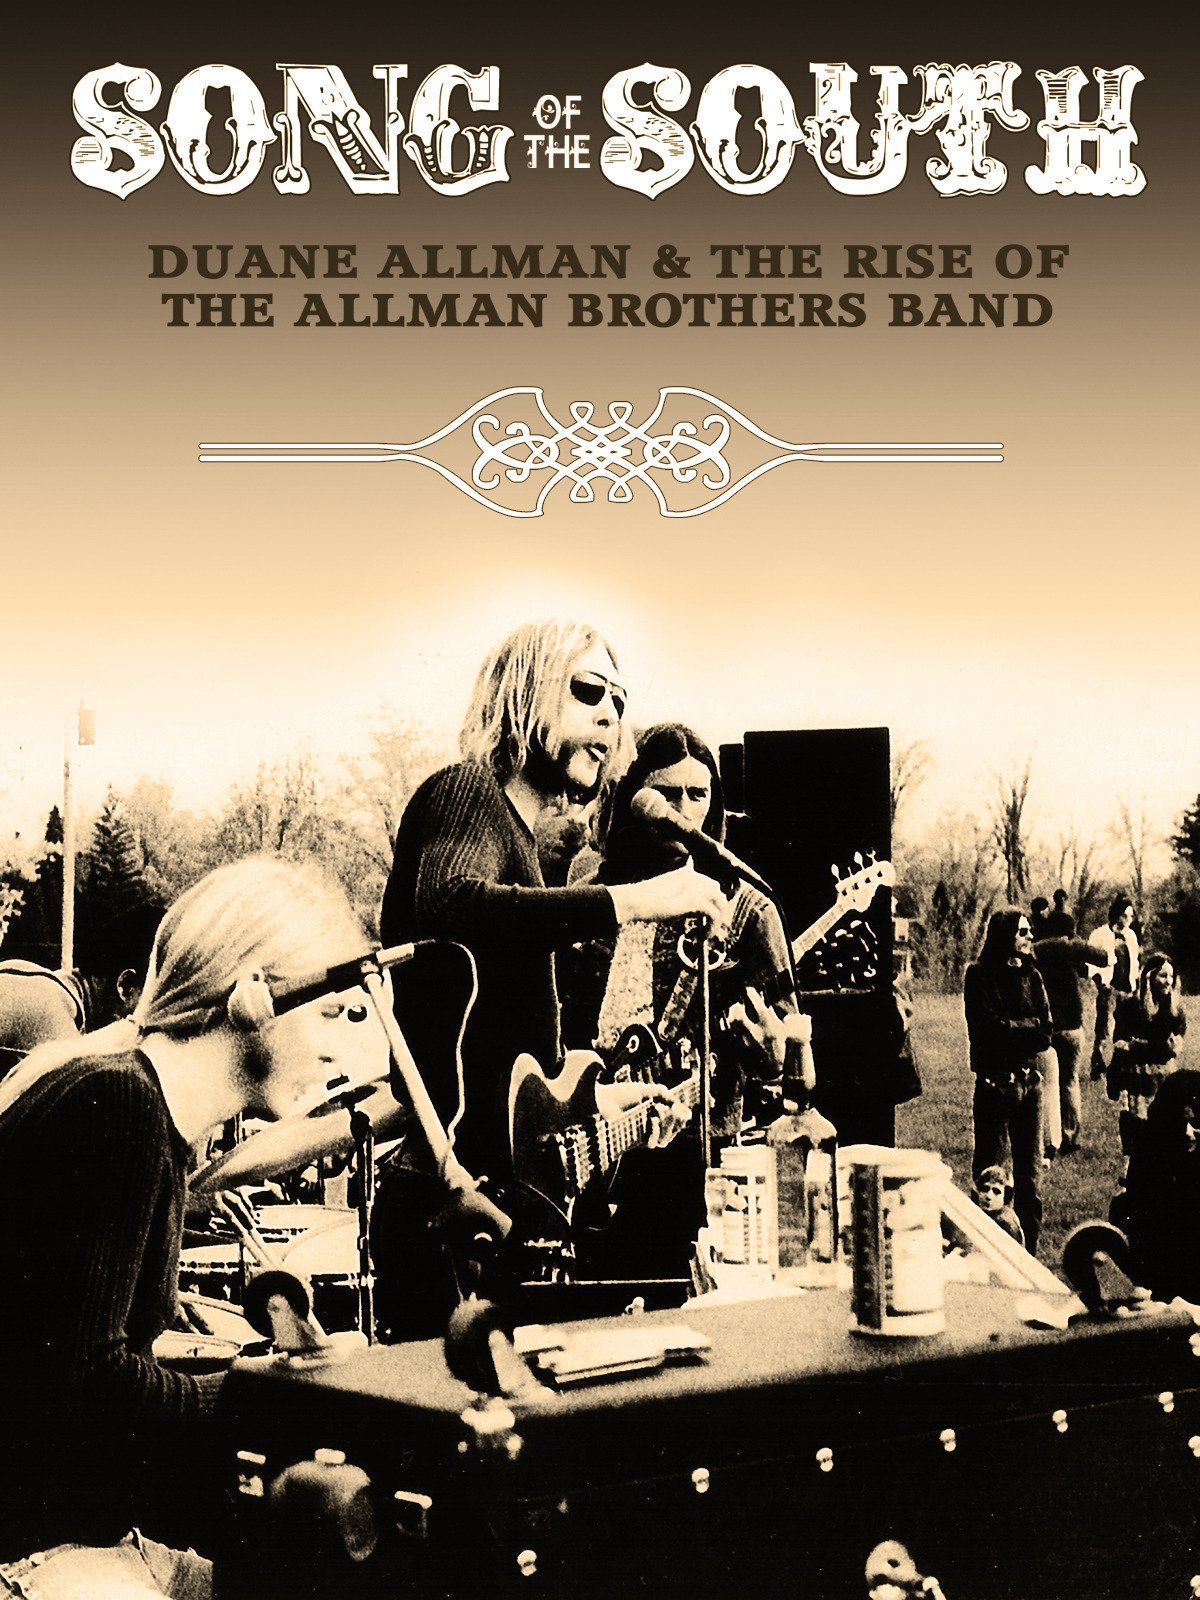 Duane Allman - Song Of The South: Duane Allman And The Rise Of The Allman Brothers on Amazon Prime Video UK